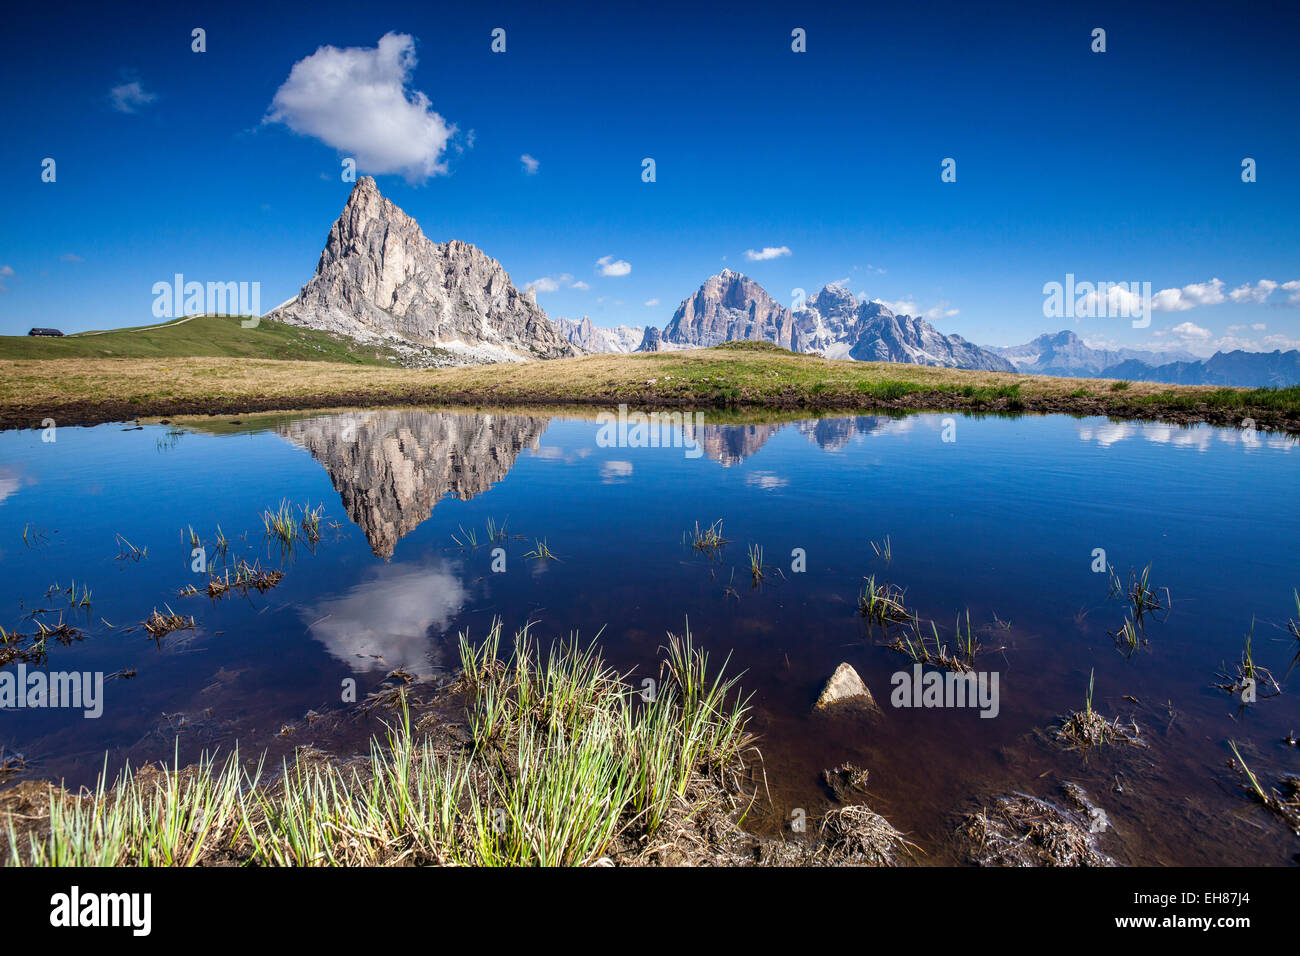 The Gusela peak and the Tofane Group by Cortina D'Ampezzo reflecting in the lake by Passo Giau, Veneto, Italy, - Stock Image